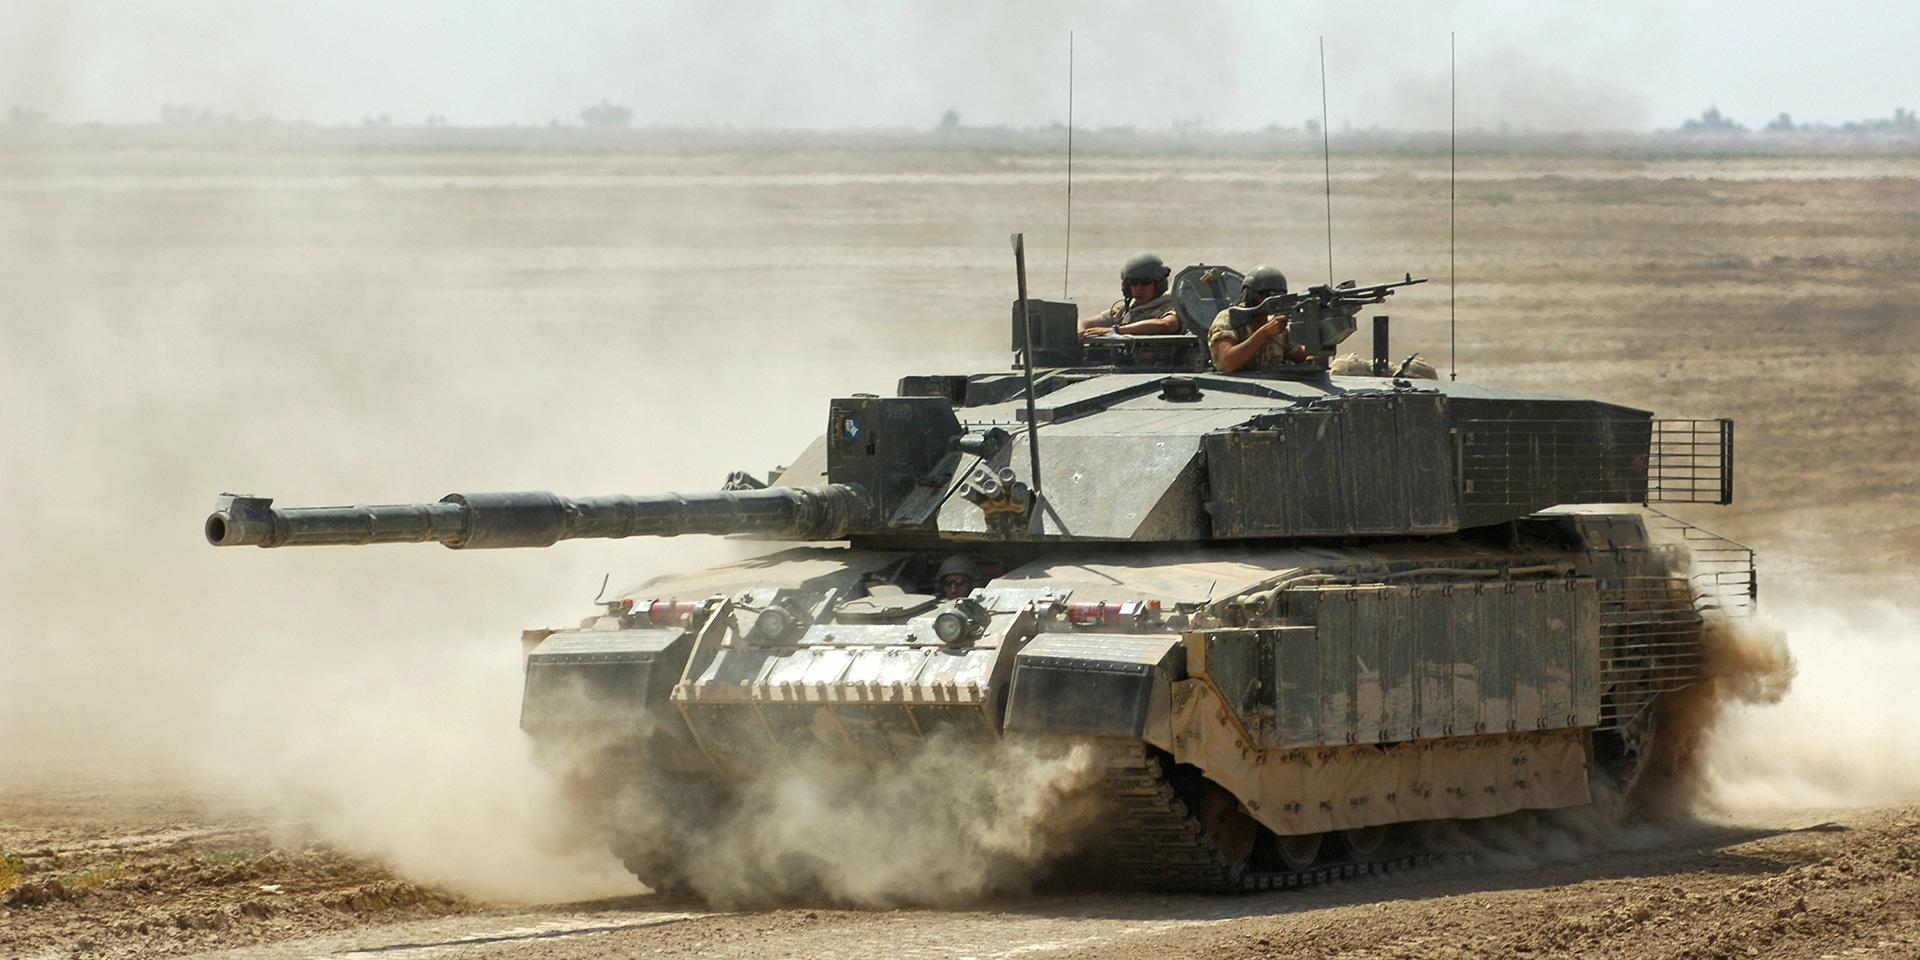 A Challenger 2 tank of The Queen's Royal Hussars at Maysan, Iraq, 2006